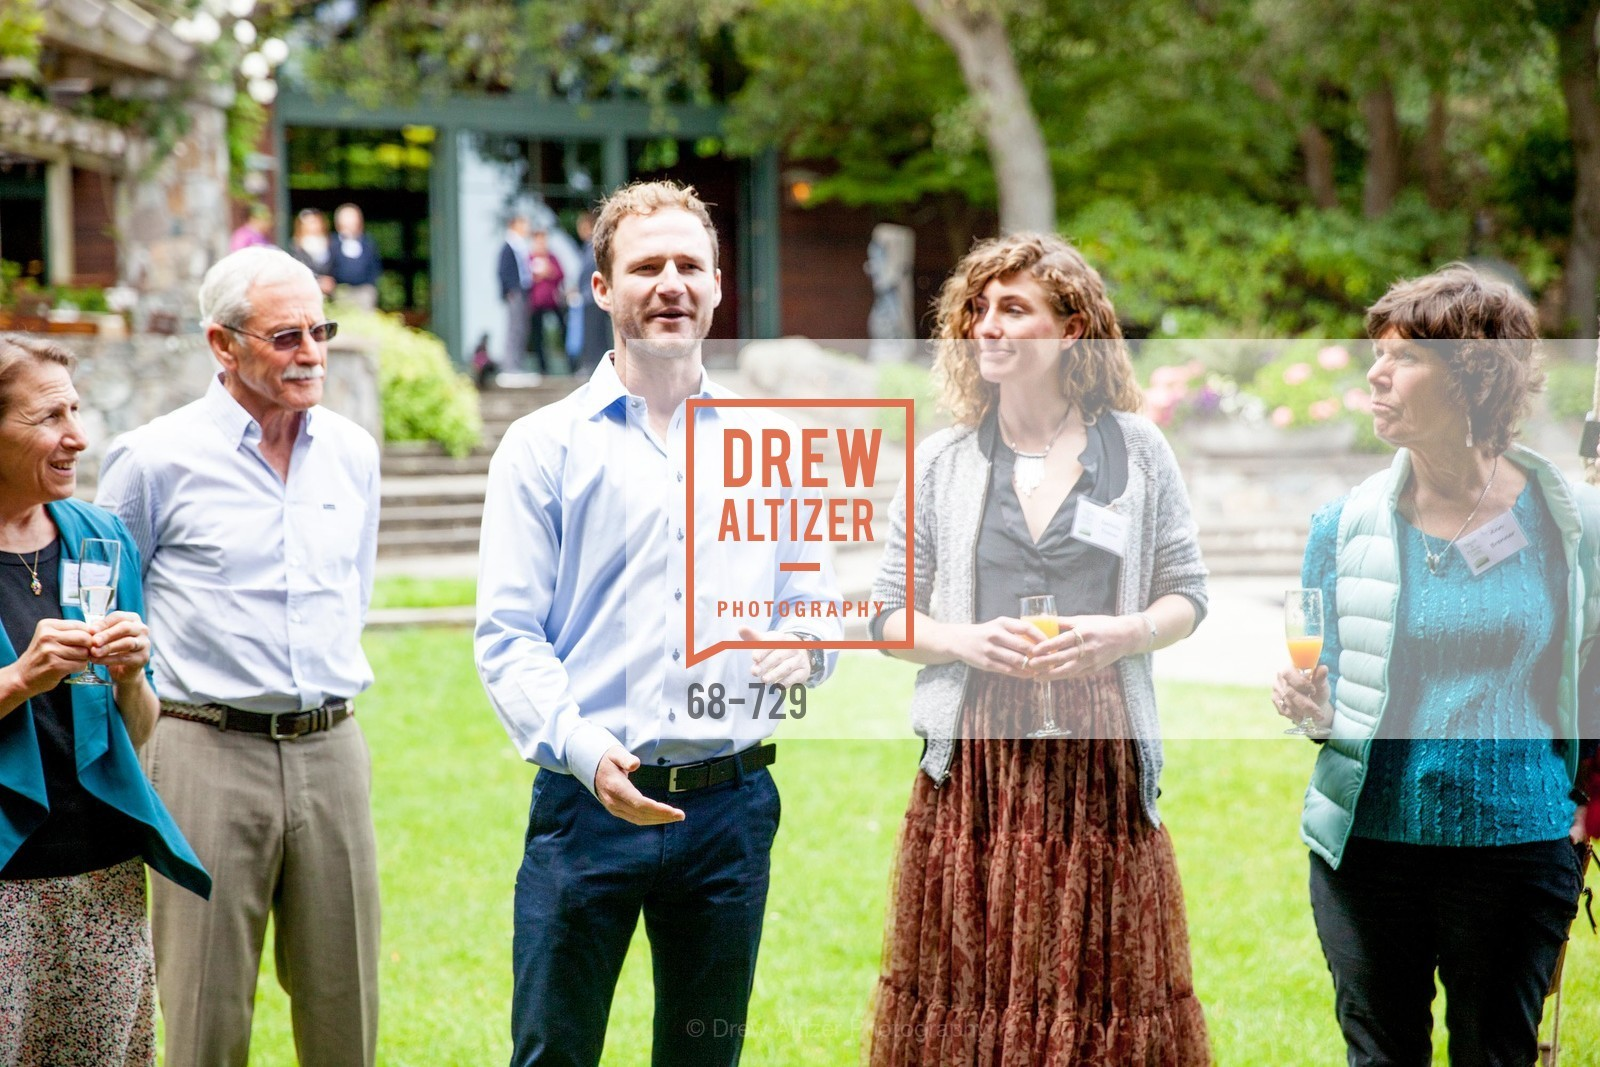 Sarah Kupferberg, Maxwell Drever, Noah Drever, Isabelle Drever, Ann Brenner, THE TRUST FOR PUBLIC LAND Luncheon Hosted by THE DREVER FAMILY FOUNDATION, US, May 15th, 2015,Drew Altizer, Drew Altizer Photography, full-service agency, private events, San Francisco photographer, photographer california